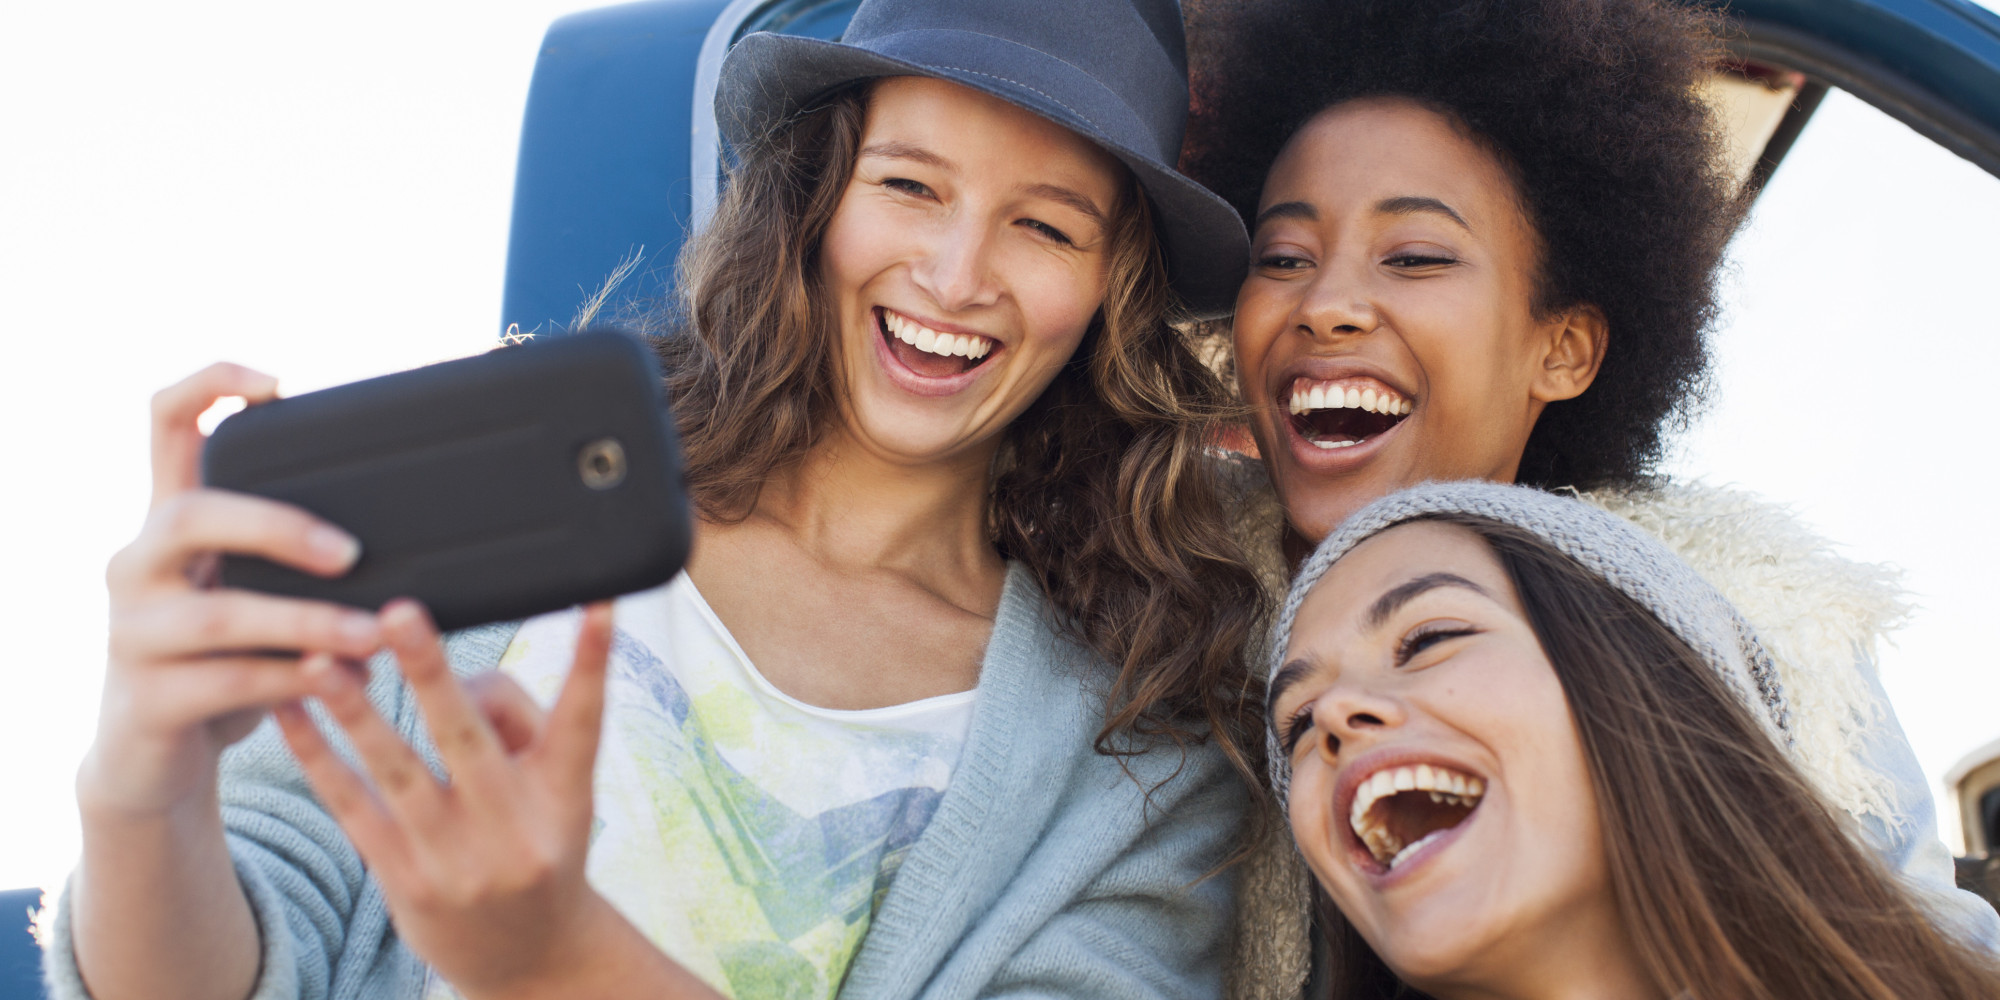 What your selfies can tell about your personality